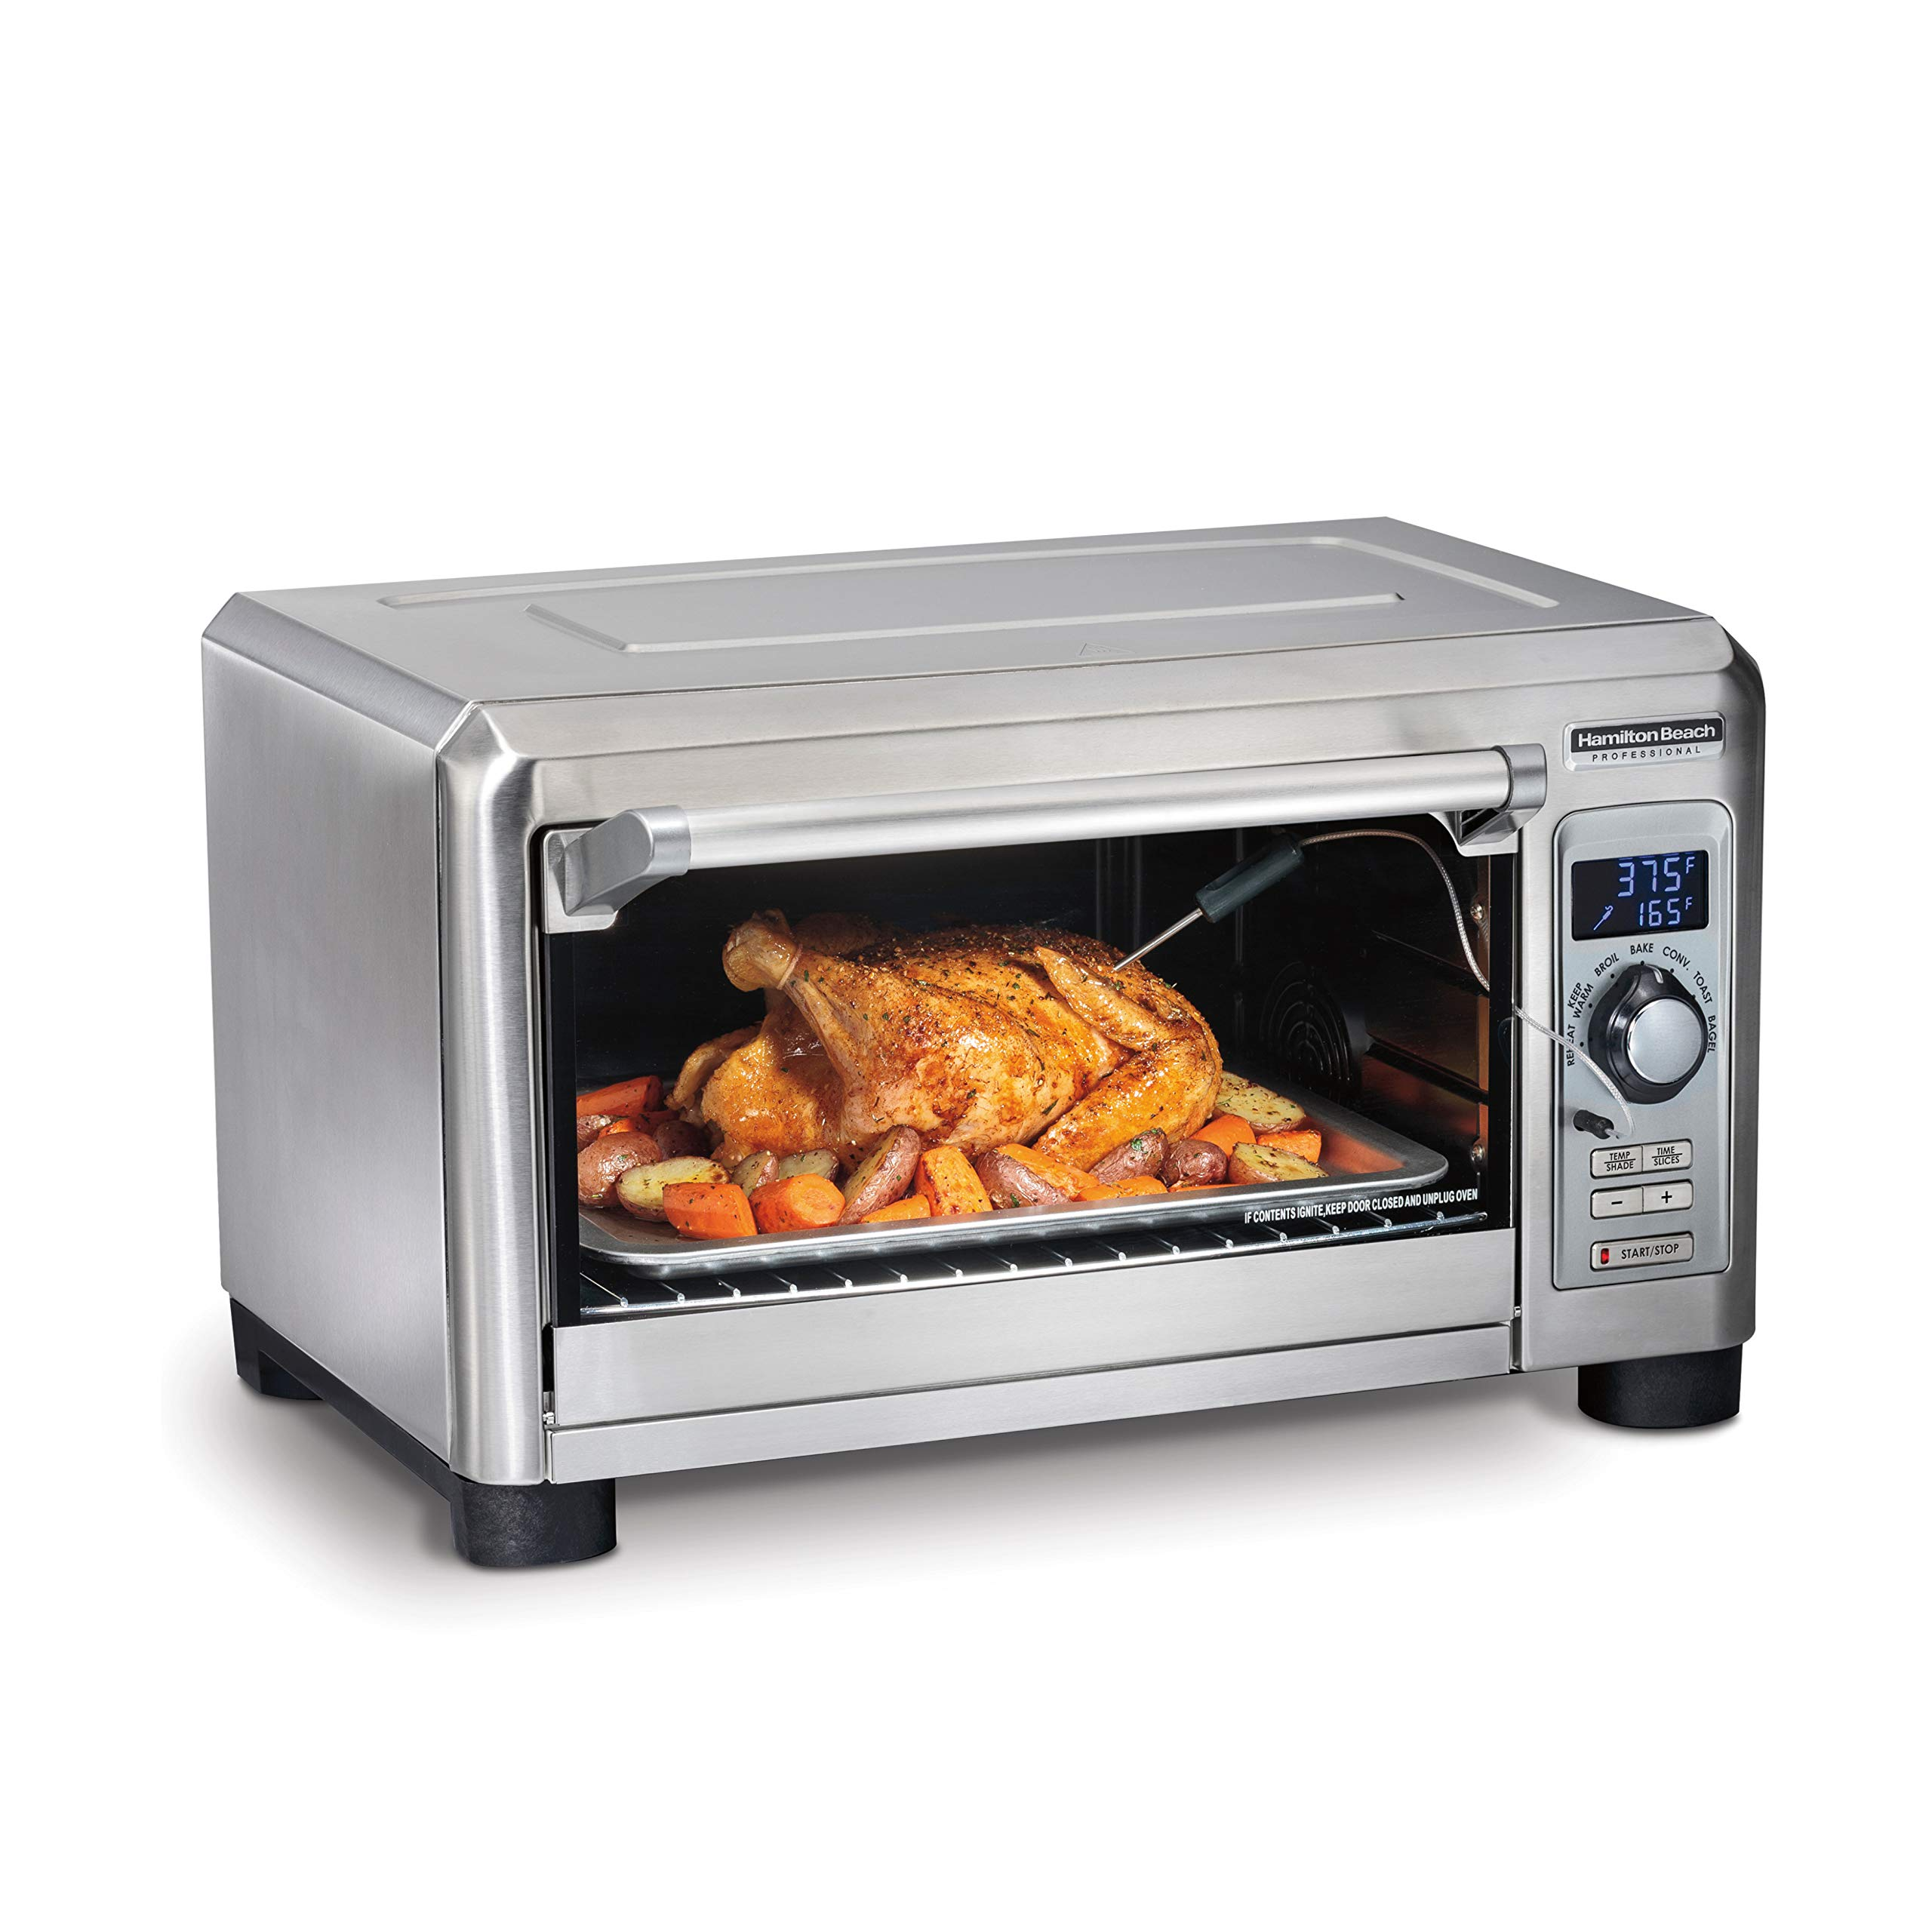 Hamilton Beach Professional Countertop Toaster Oven, Digital, Convection, Large 6-Slice, Temperature Probe, Stainless Steel (31240), by Hamilton Beach (Image #1)